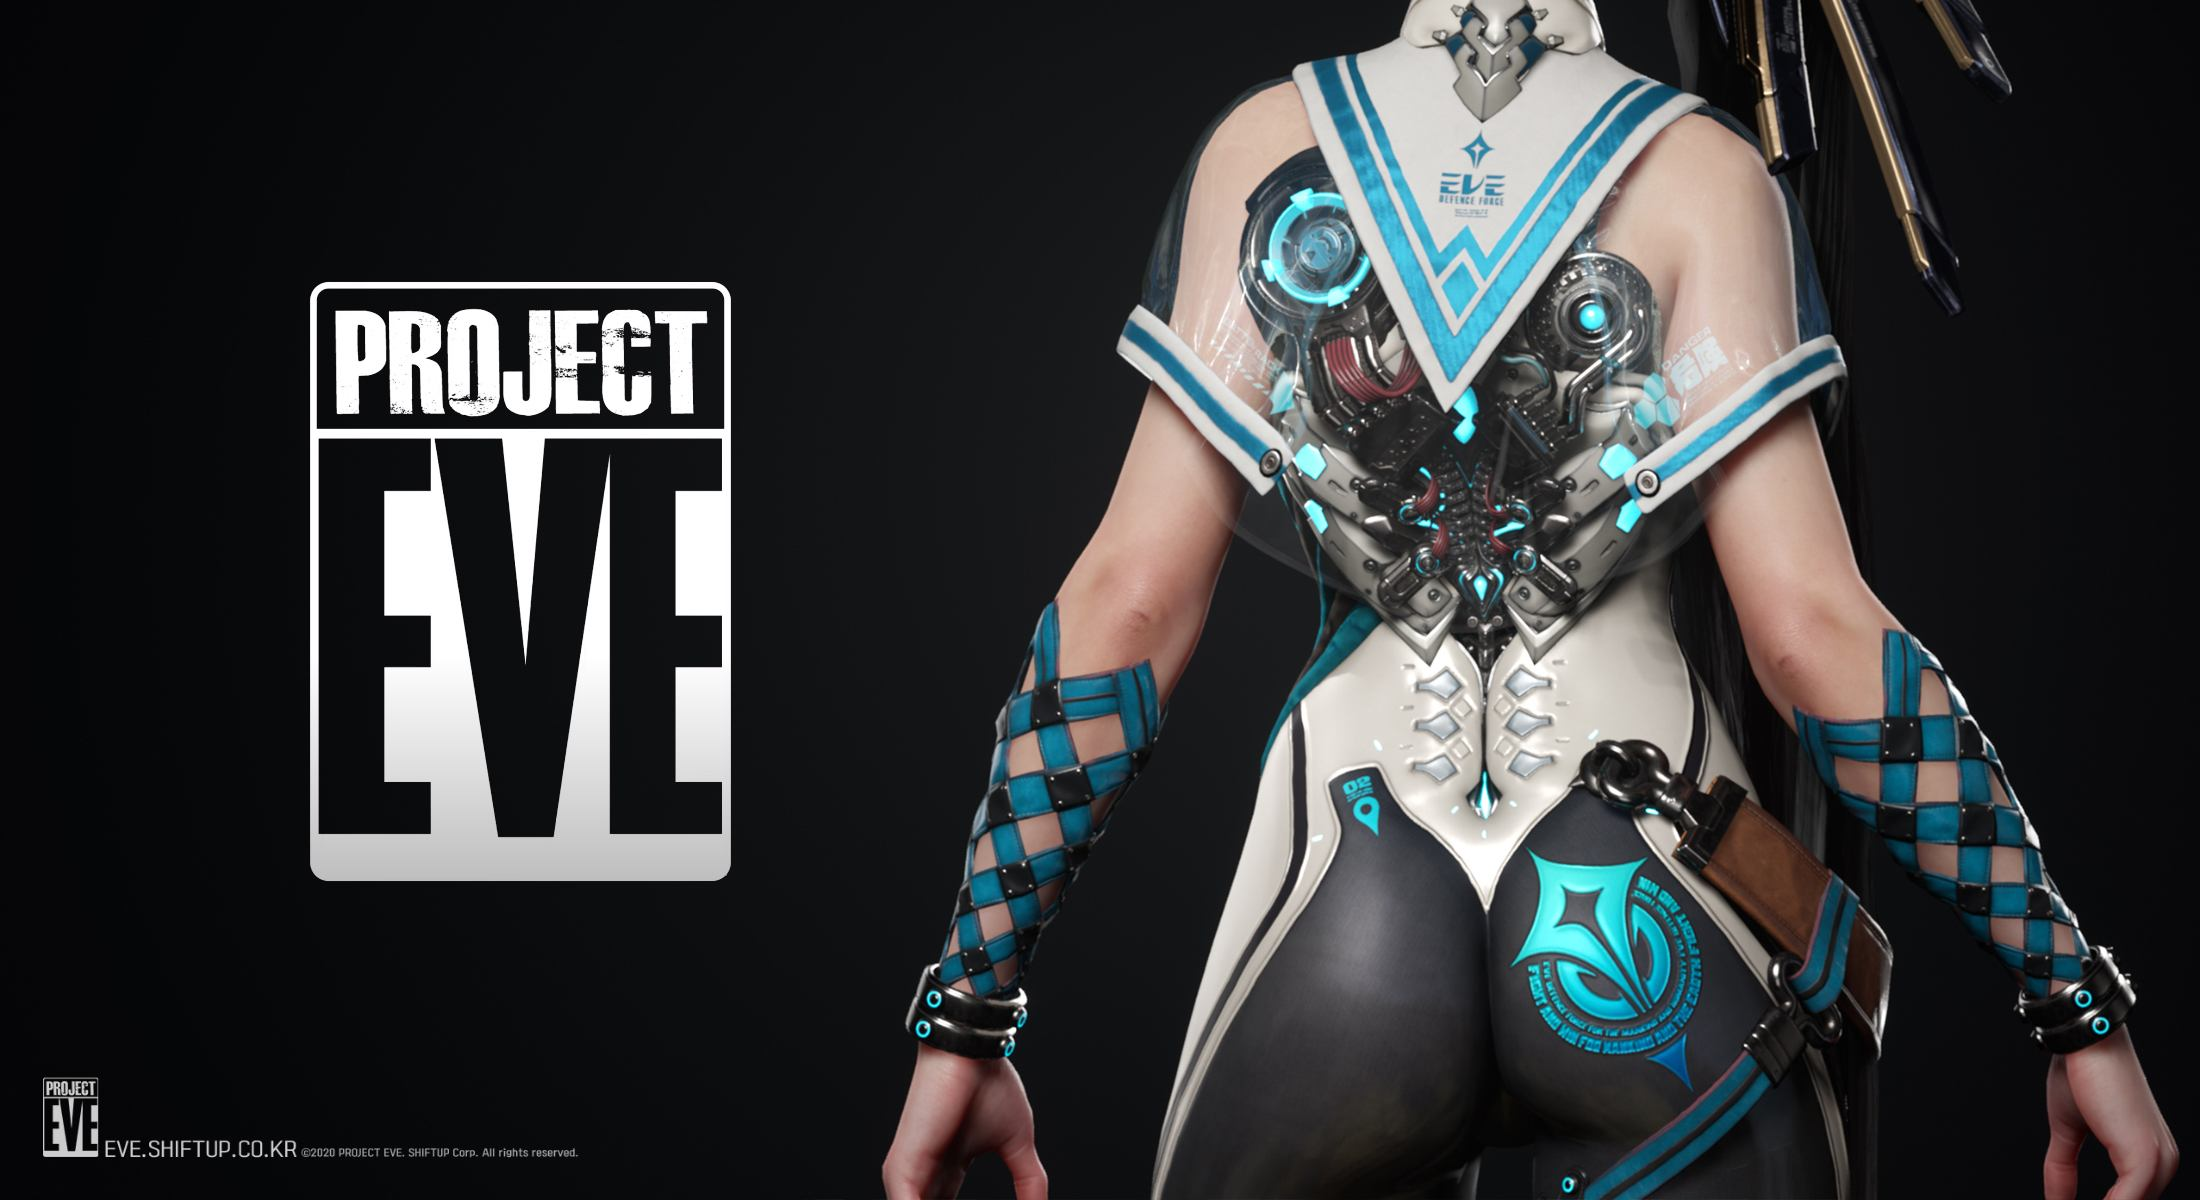 Project Eve Wallpaper